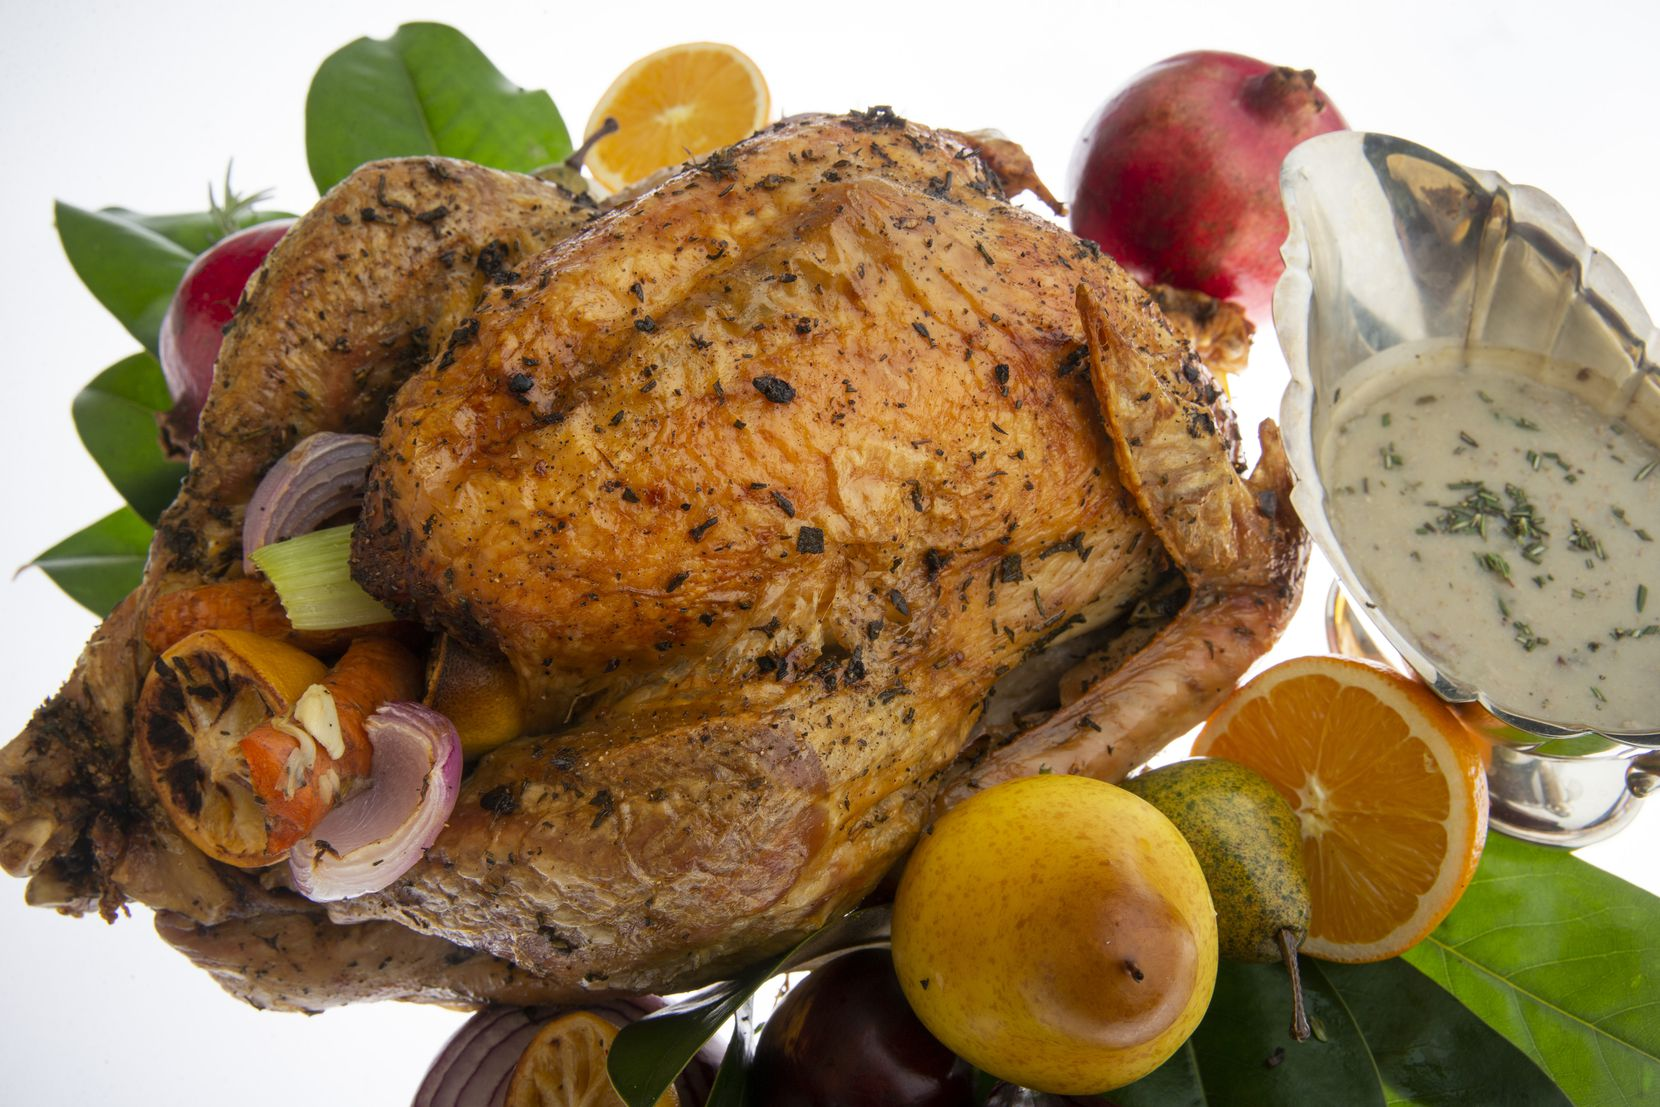 Turkey is prepared with Mediterranean herbs and olive oil.